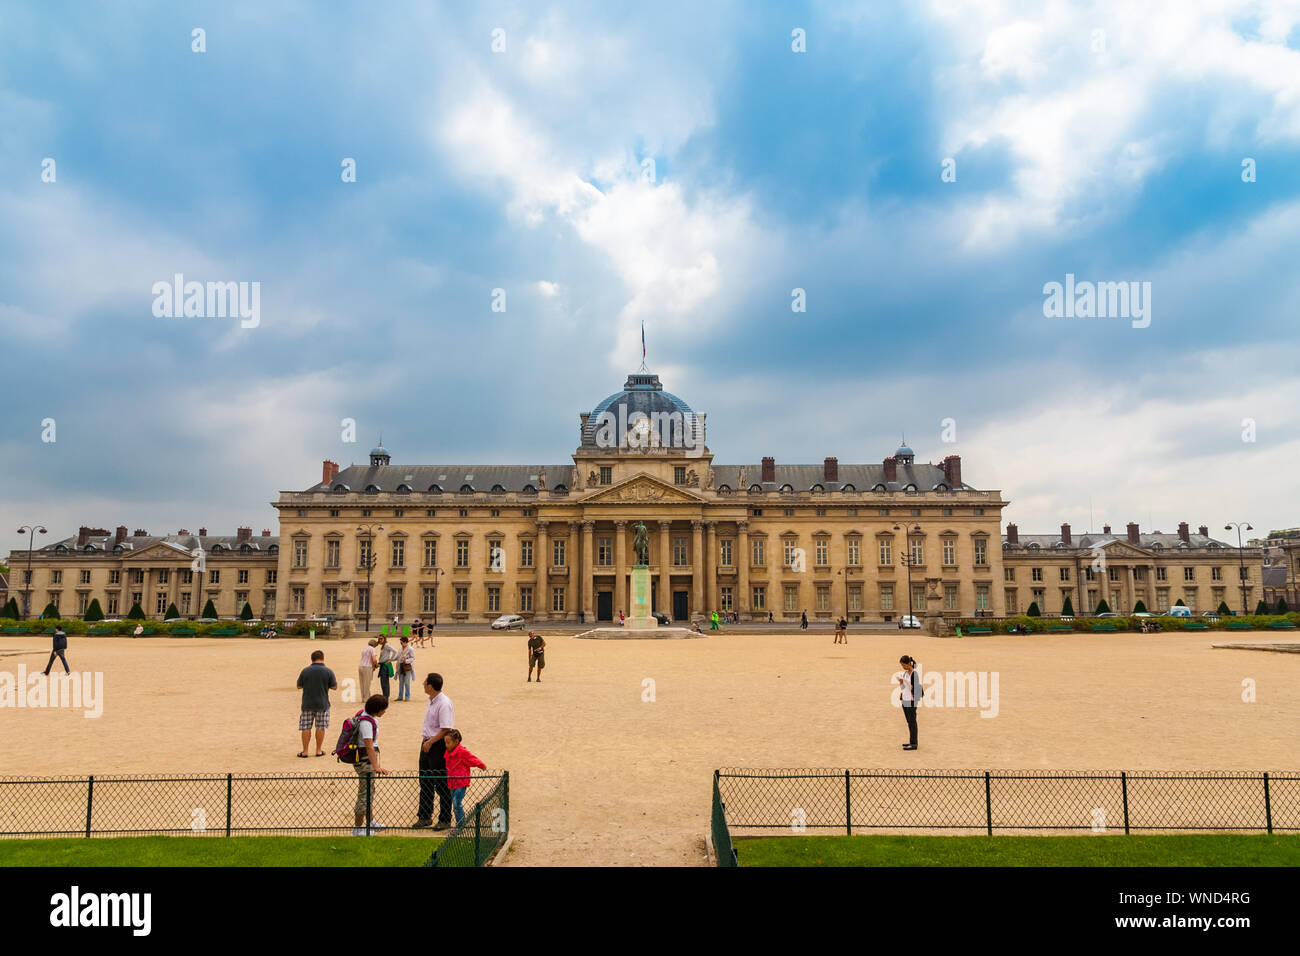 Lovely view of people standing in front of the École Militaire, a military school in the 7th arrondissement of Paris, France, southeast of the Champ... Stock Photo